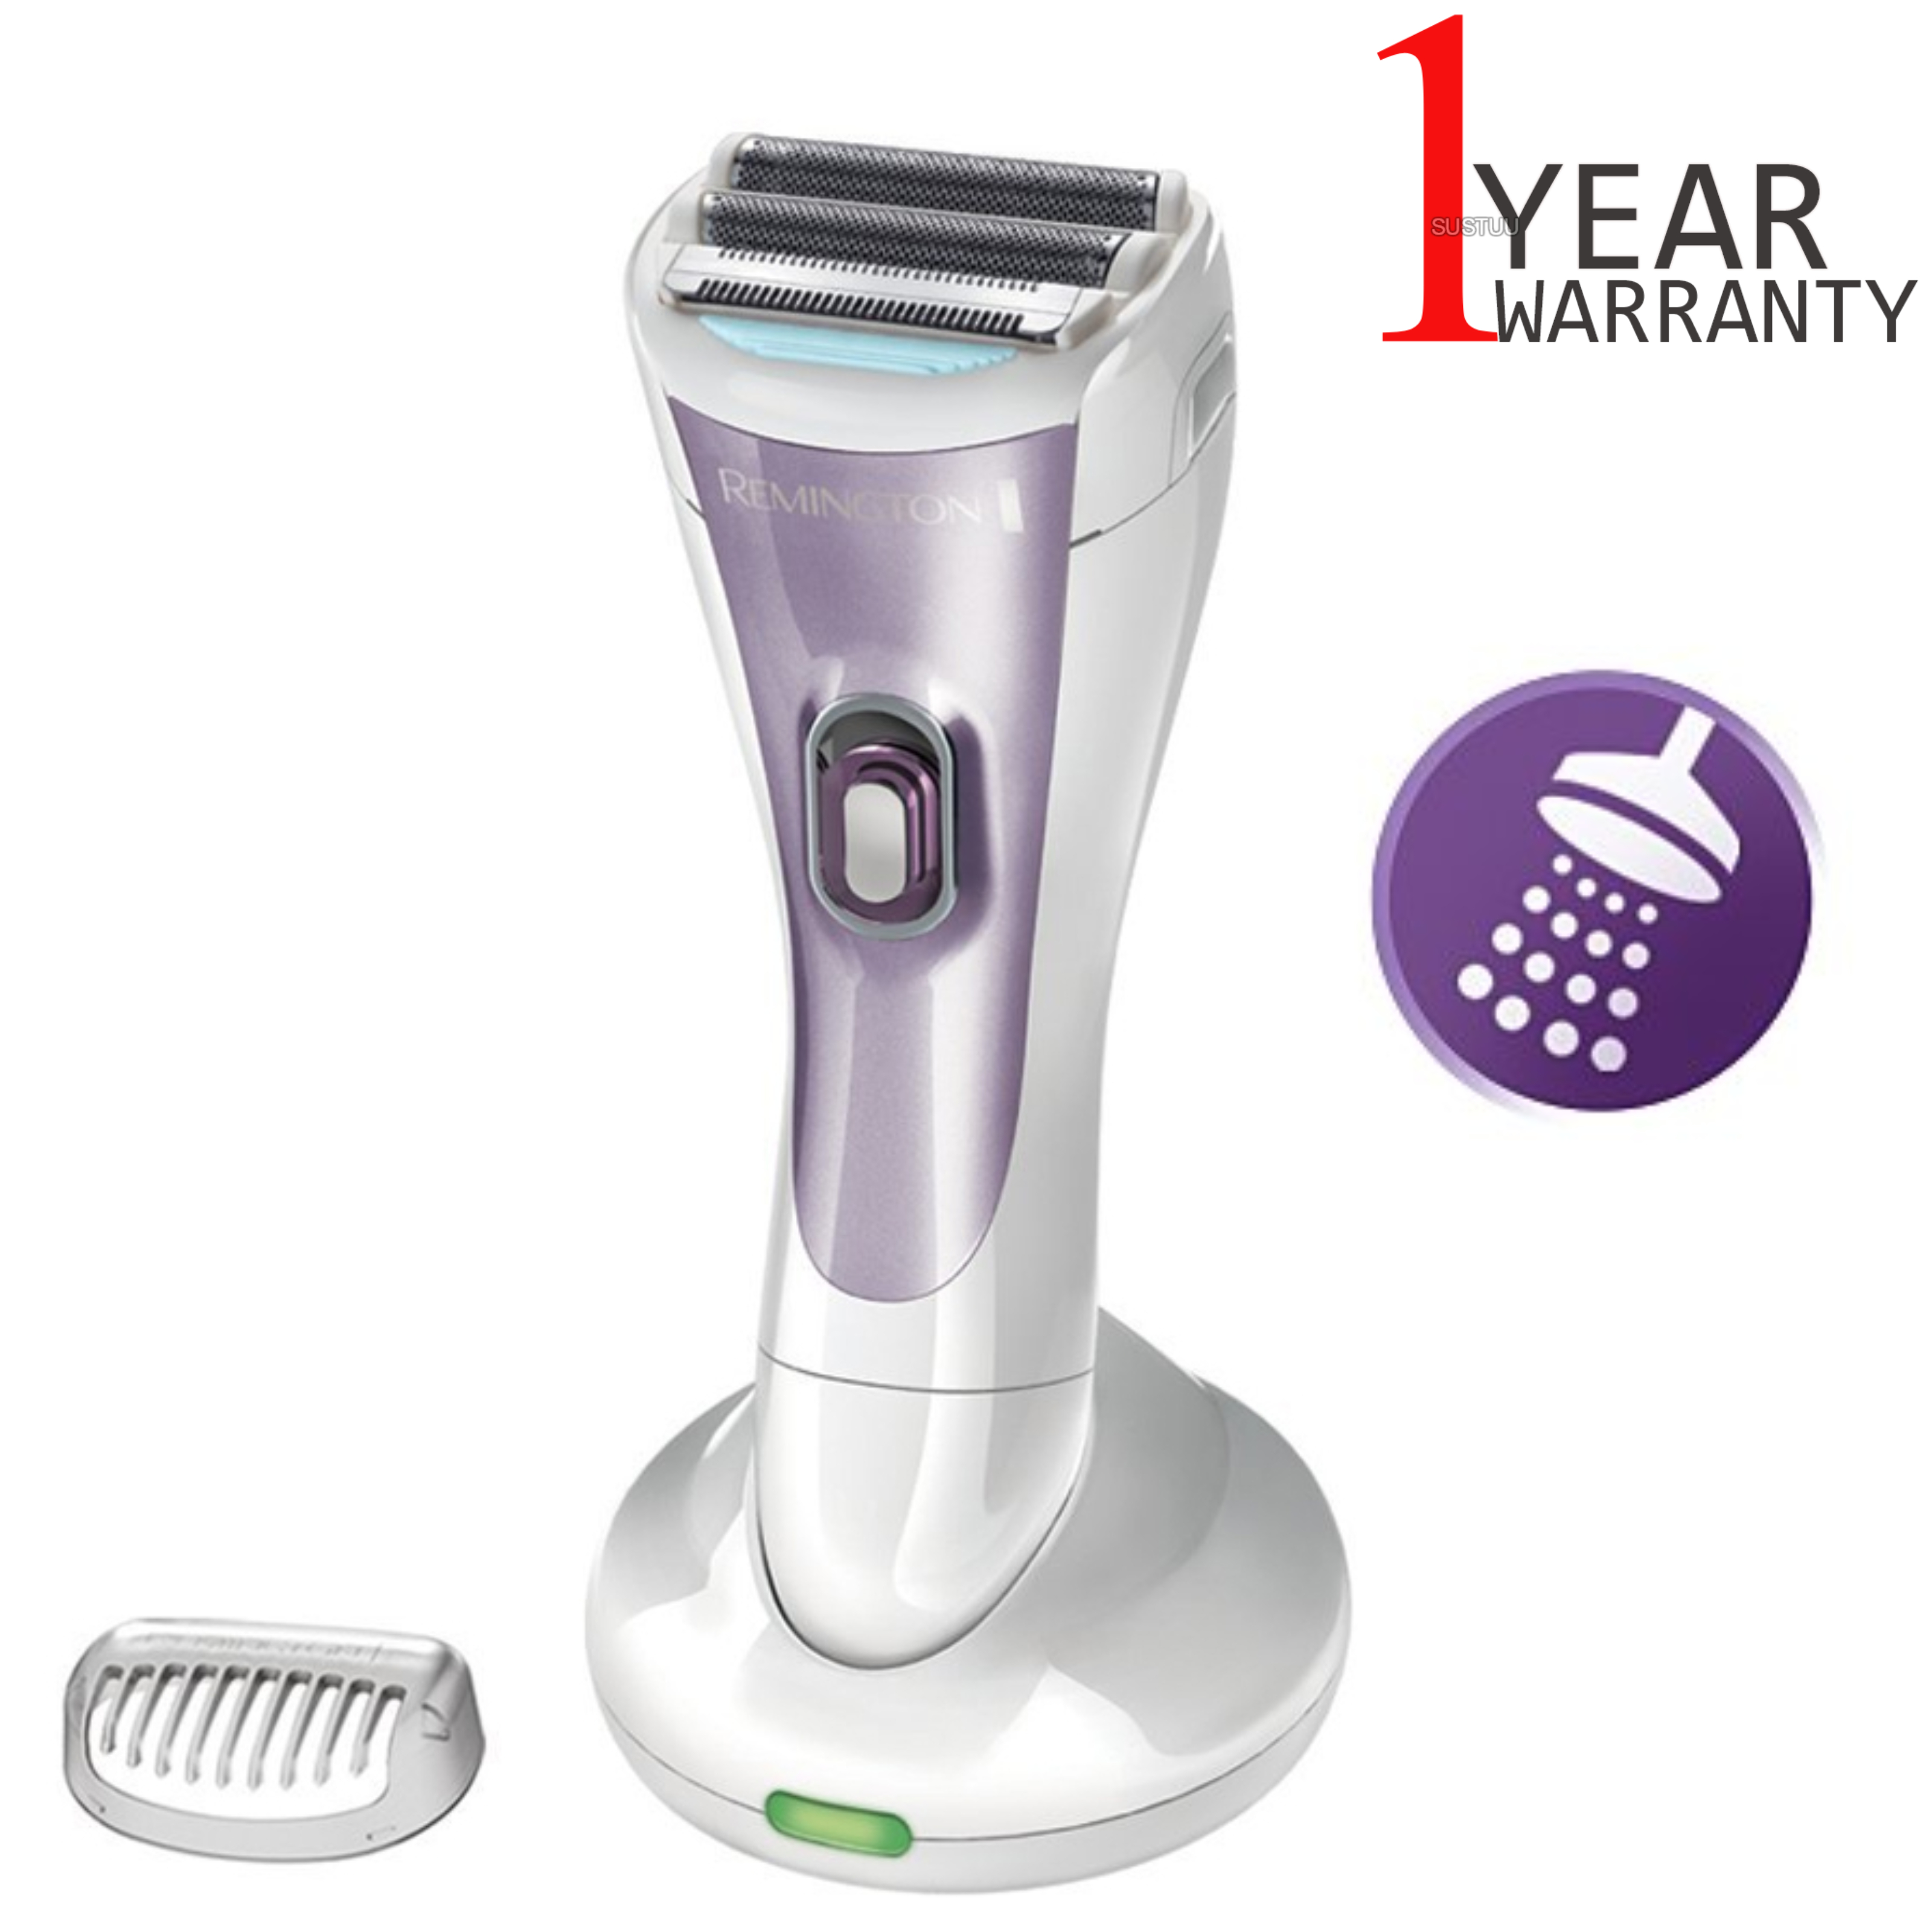 Remington Smooth & Silky Rechargeable Lady Shaver | Double Foil Head | Wet & Dry | NEW